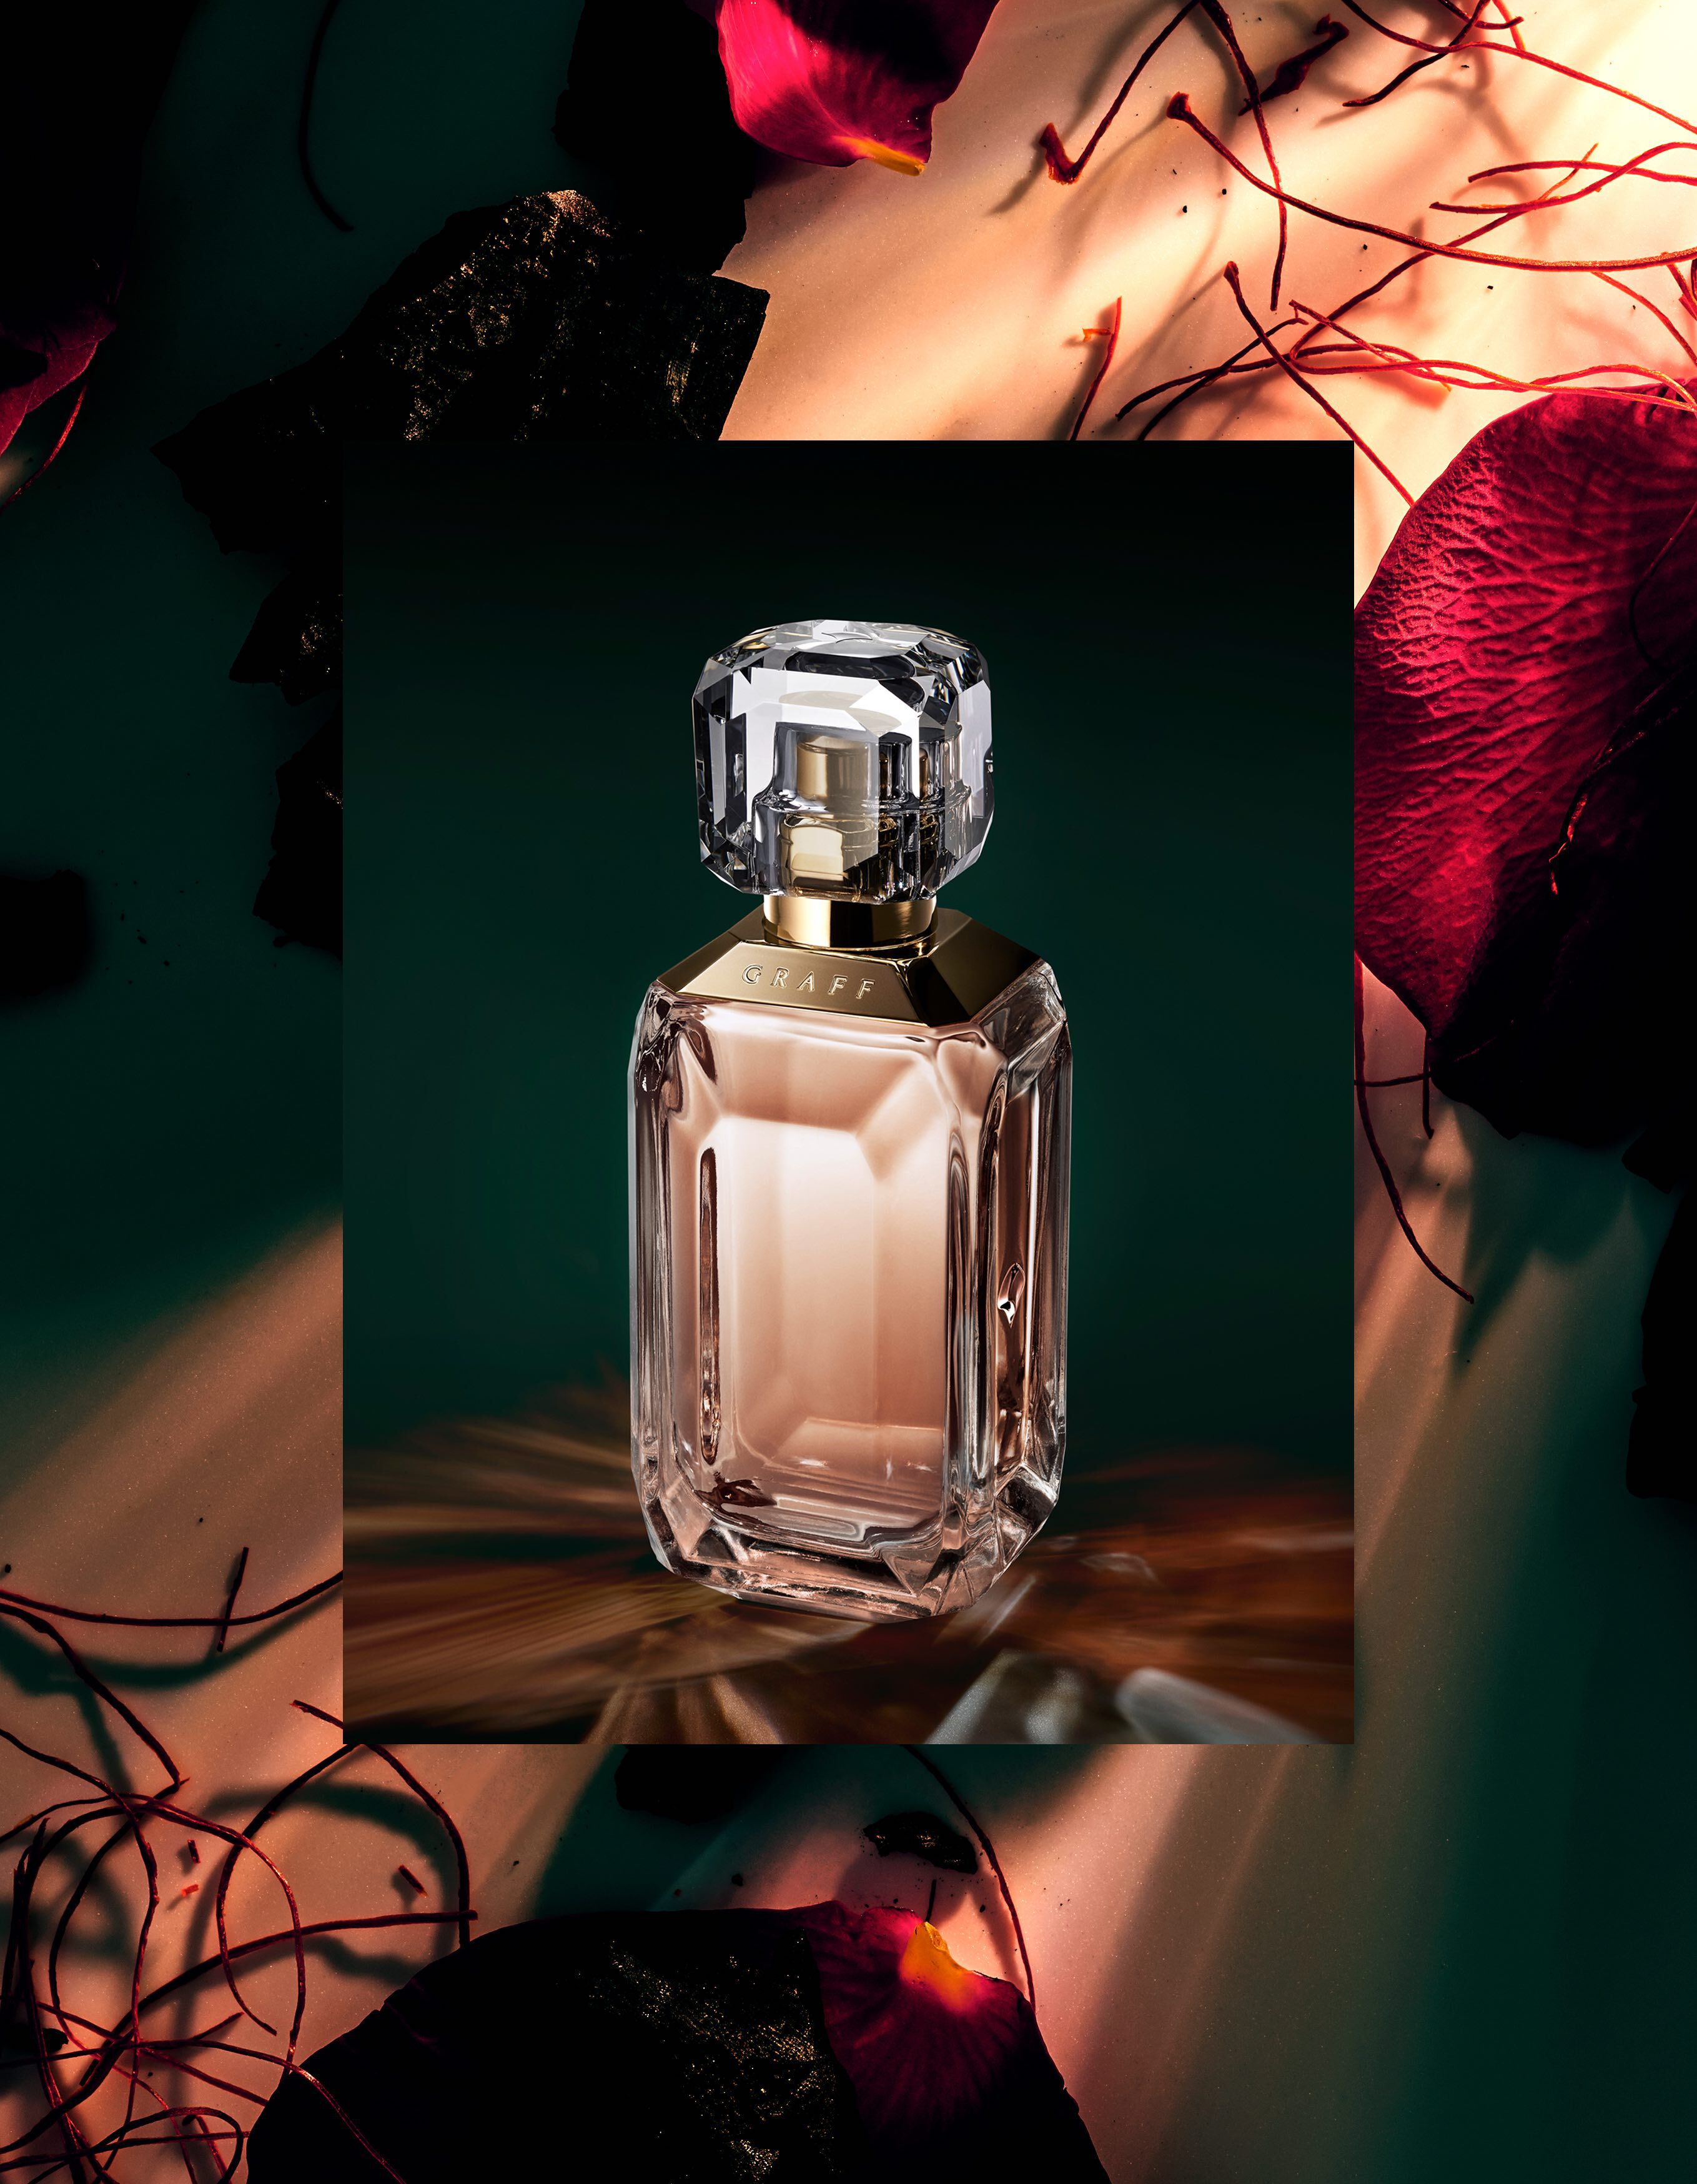 The Lesedi La Rona III fragrance with ingredients by Graff